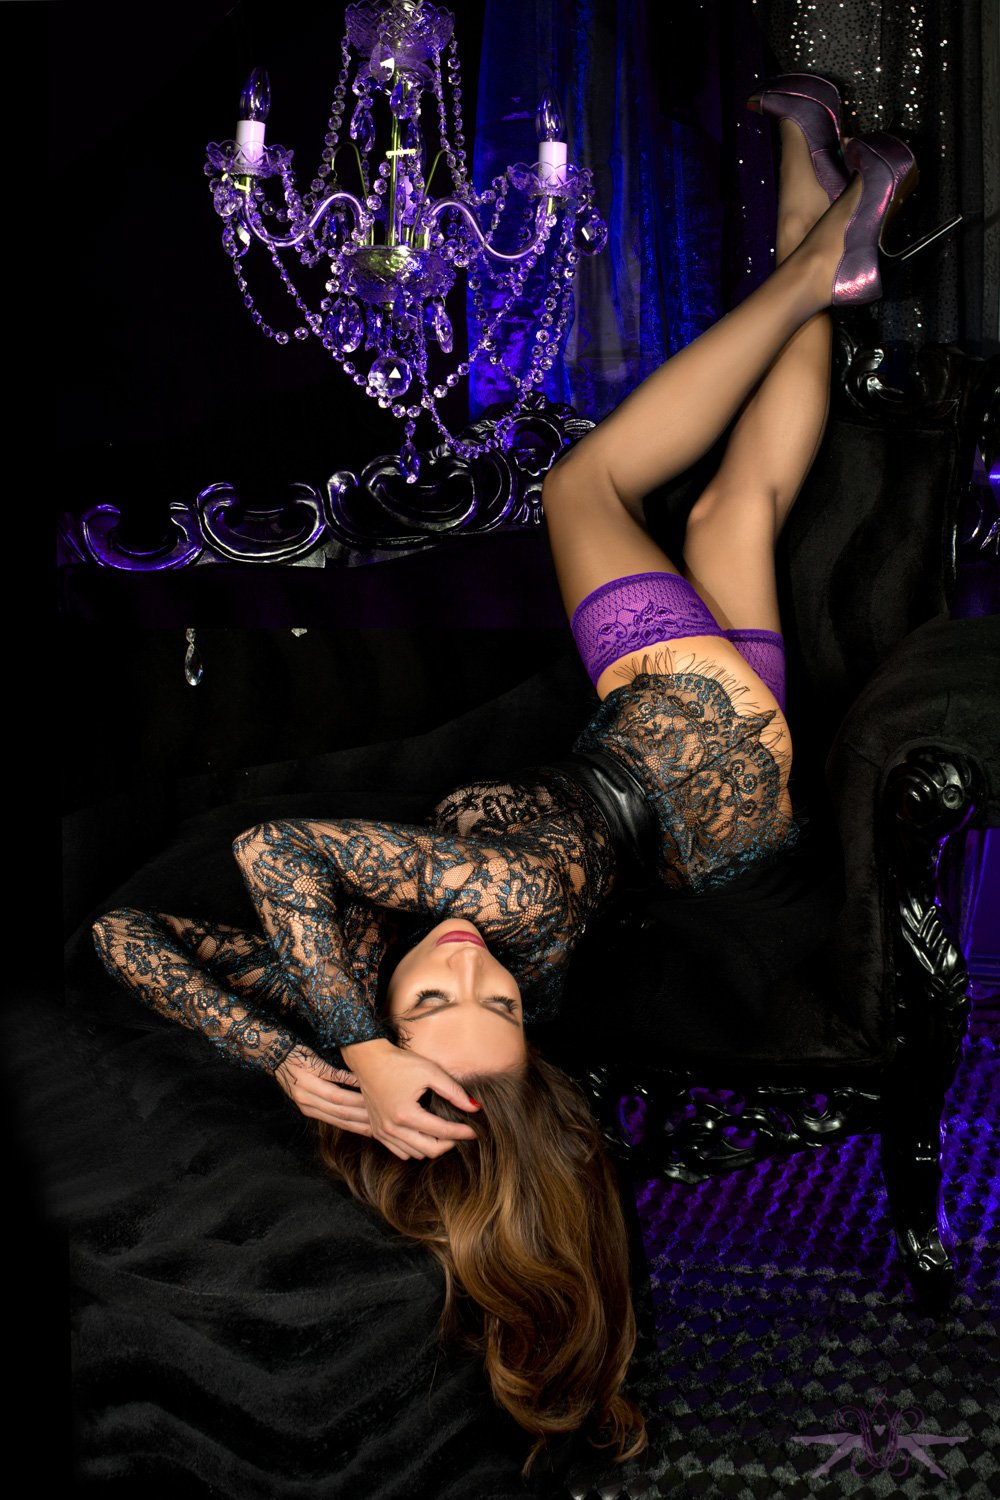 Black nylon stockings with violet top